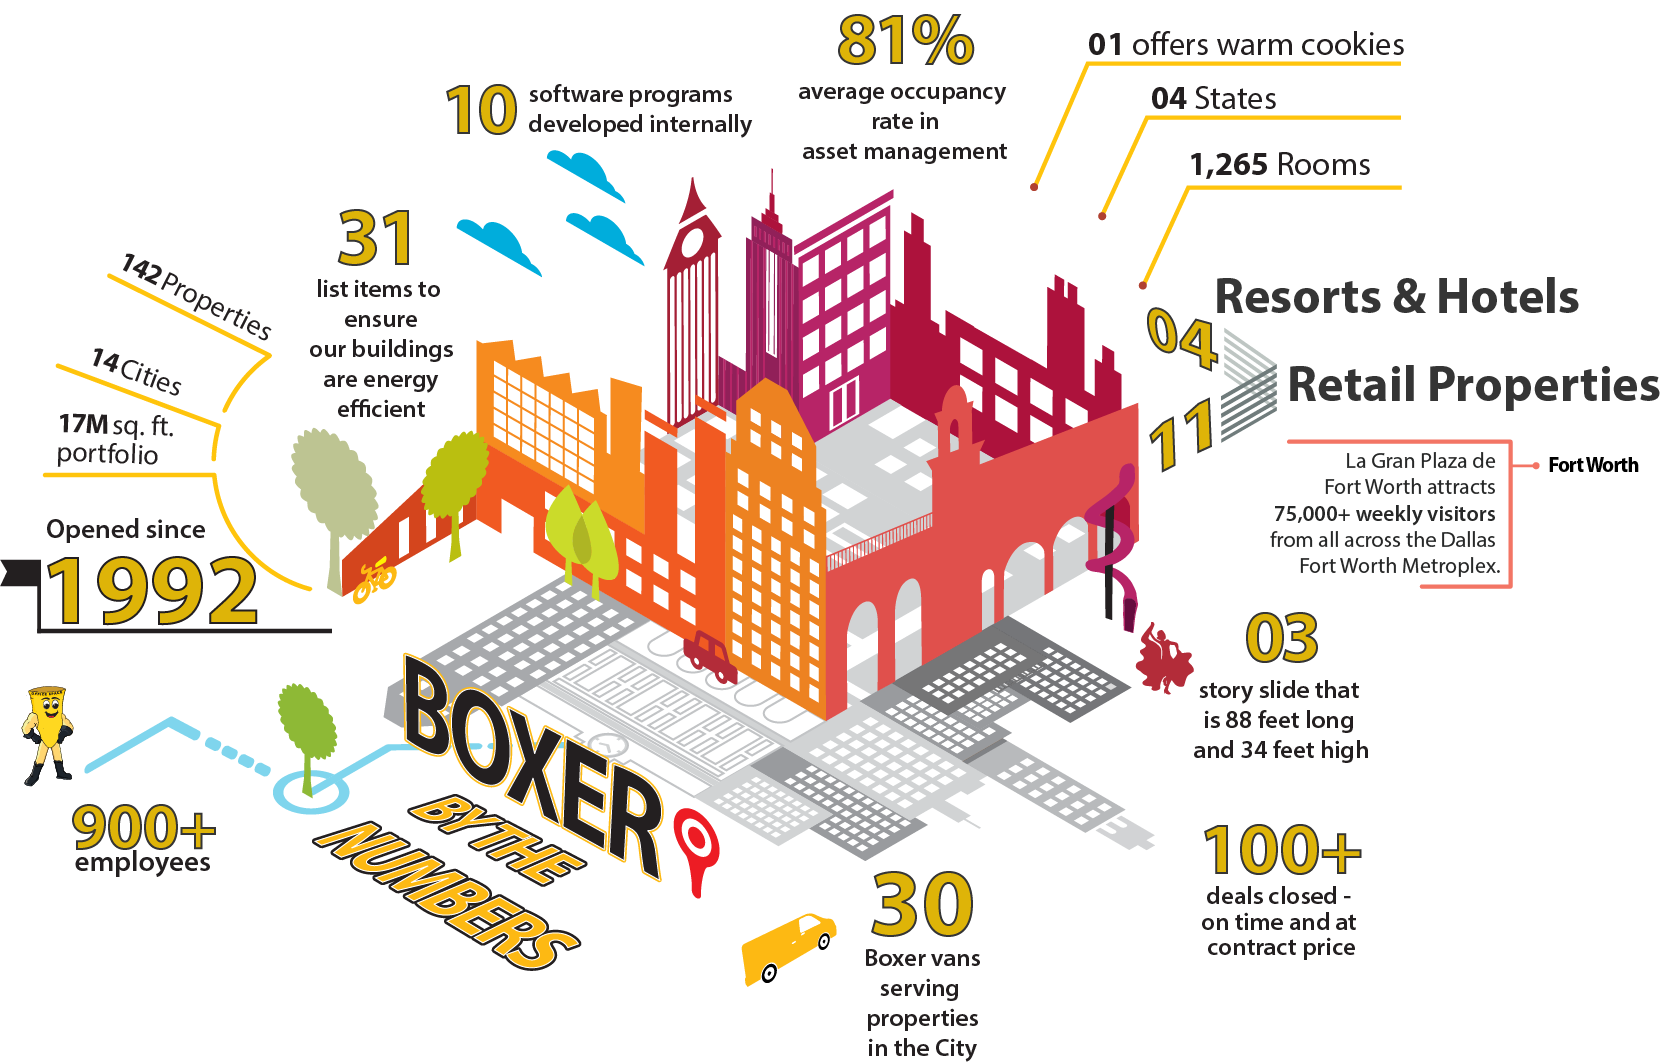 Boxer by numbers